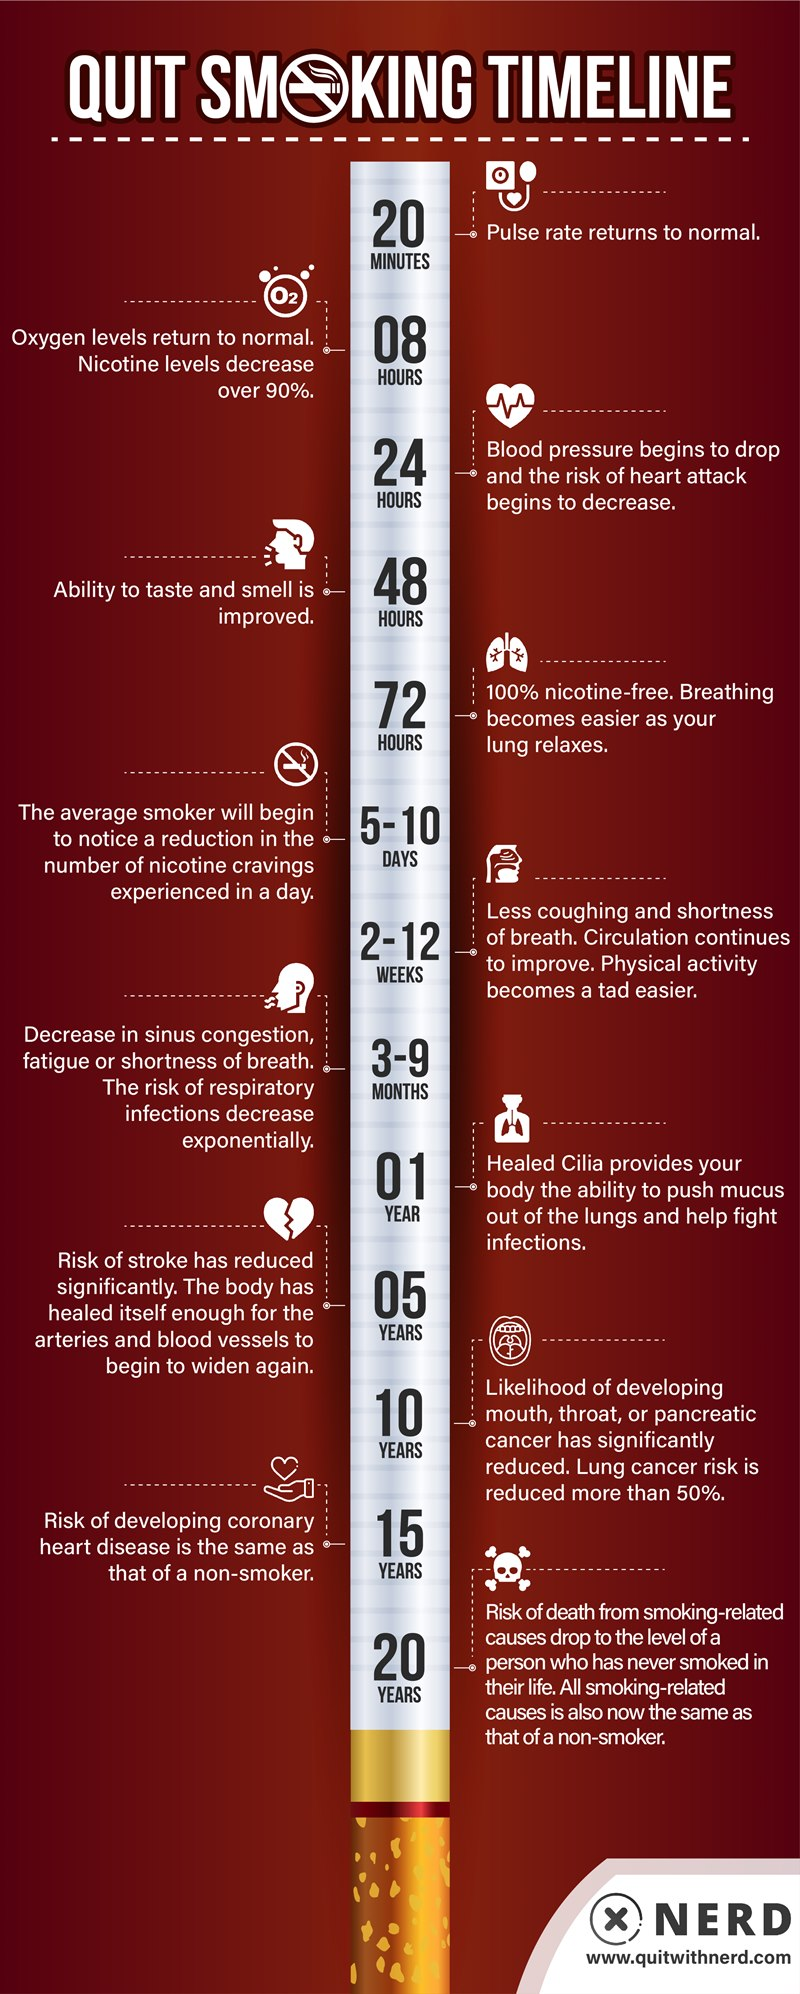 Quit Smoking Timeline - What Happens When You Stop Smoking (INFOGRAPHIC)